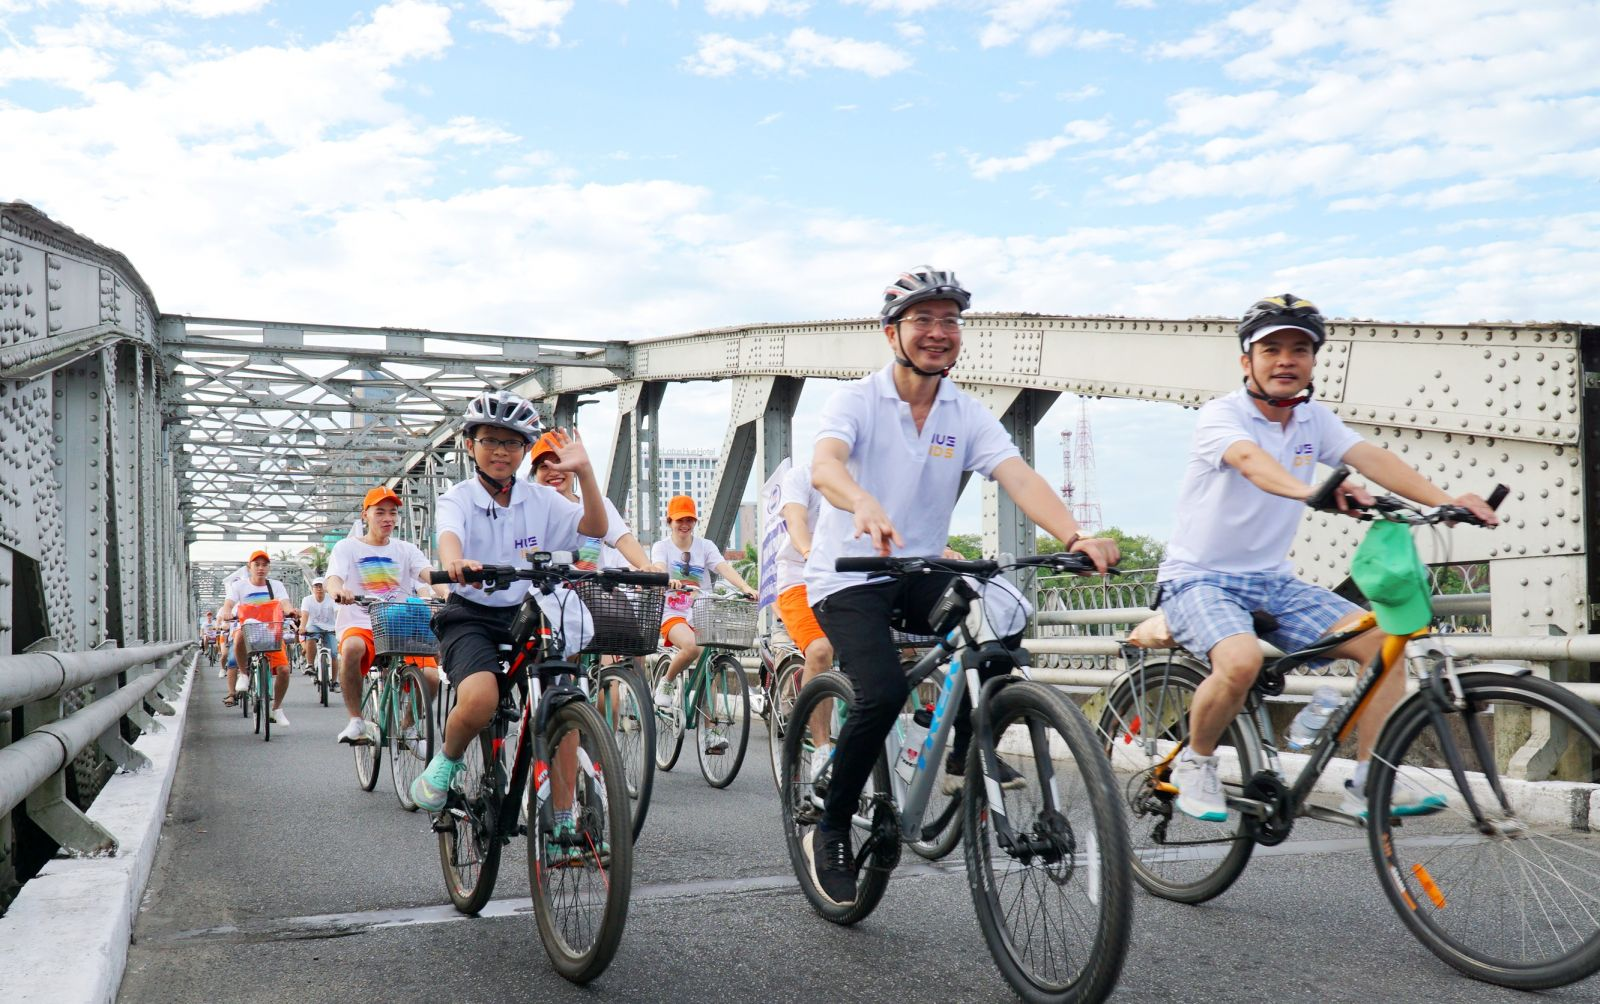 Family members cycling together is also one of the goals that the program aims at